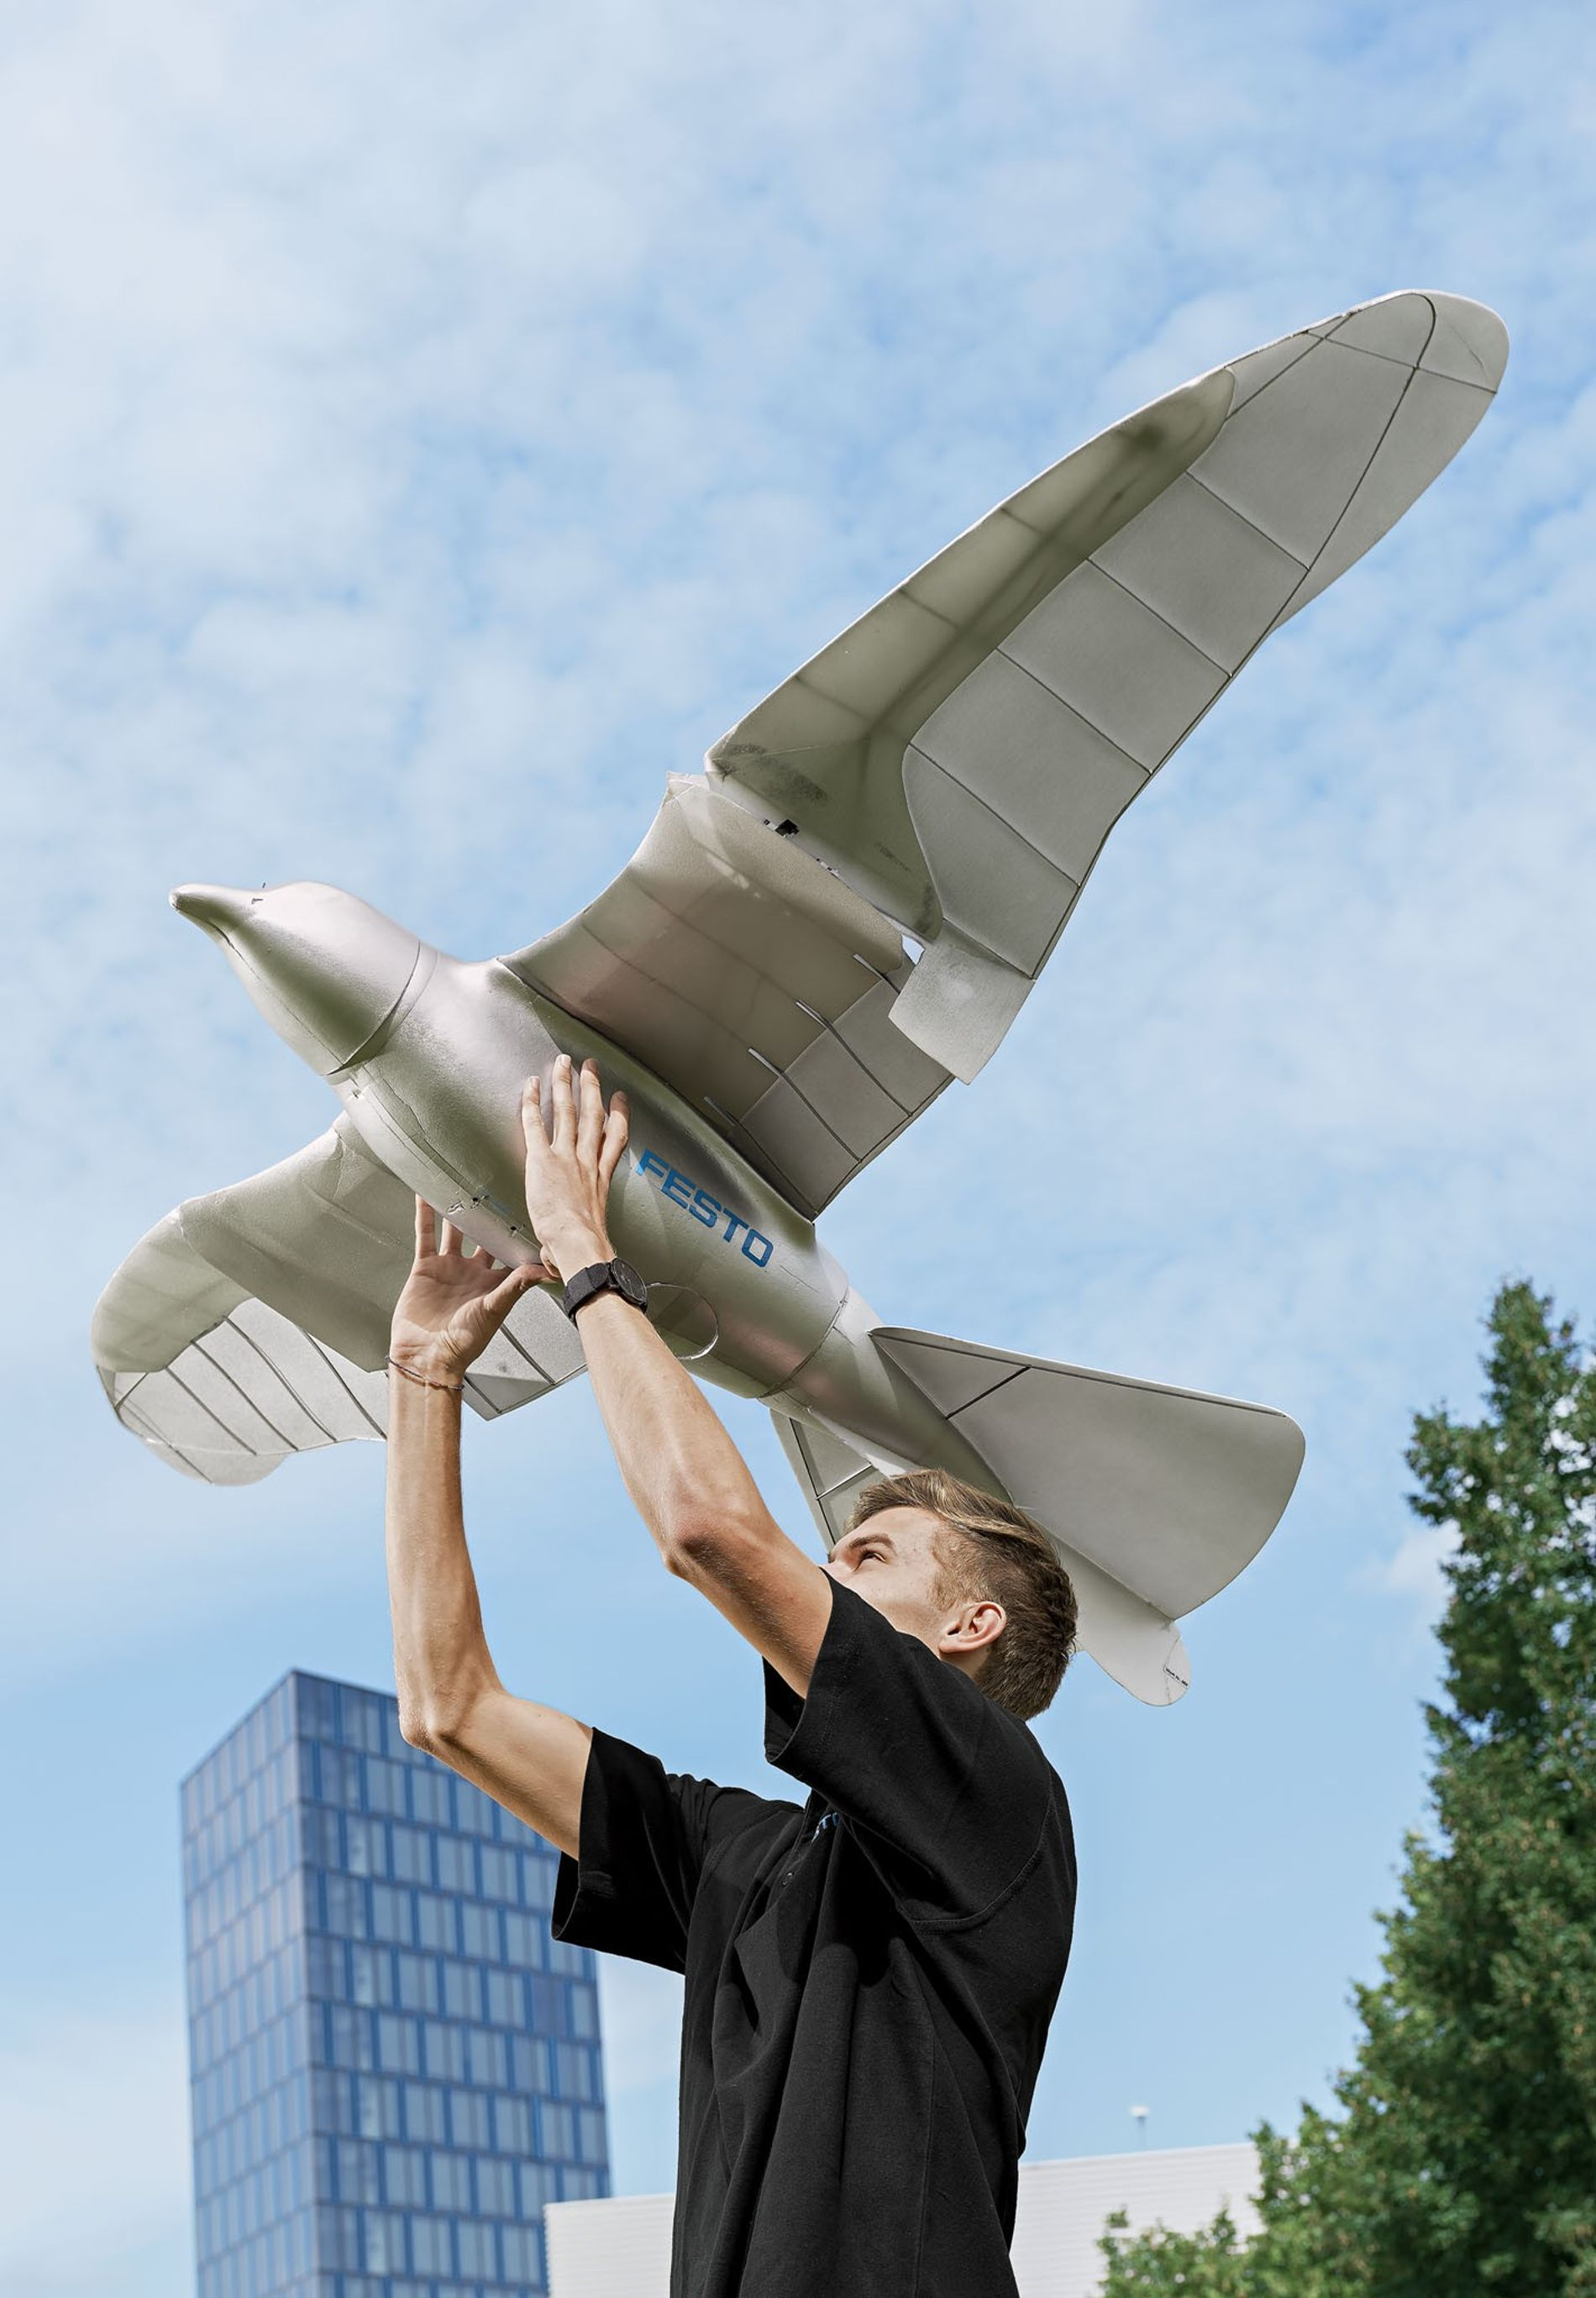 The SmartBird, an ornithopter created by the company Festo, flies so well because it twists its wings as it flaps them, just like real birds do.